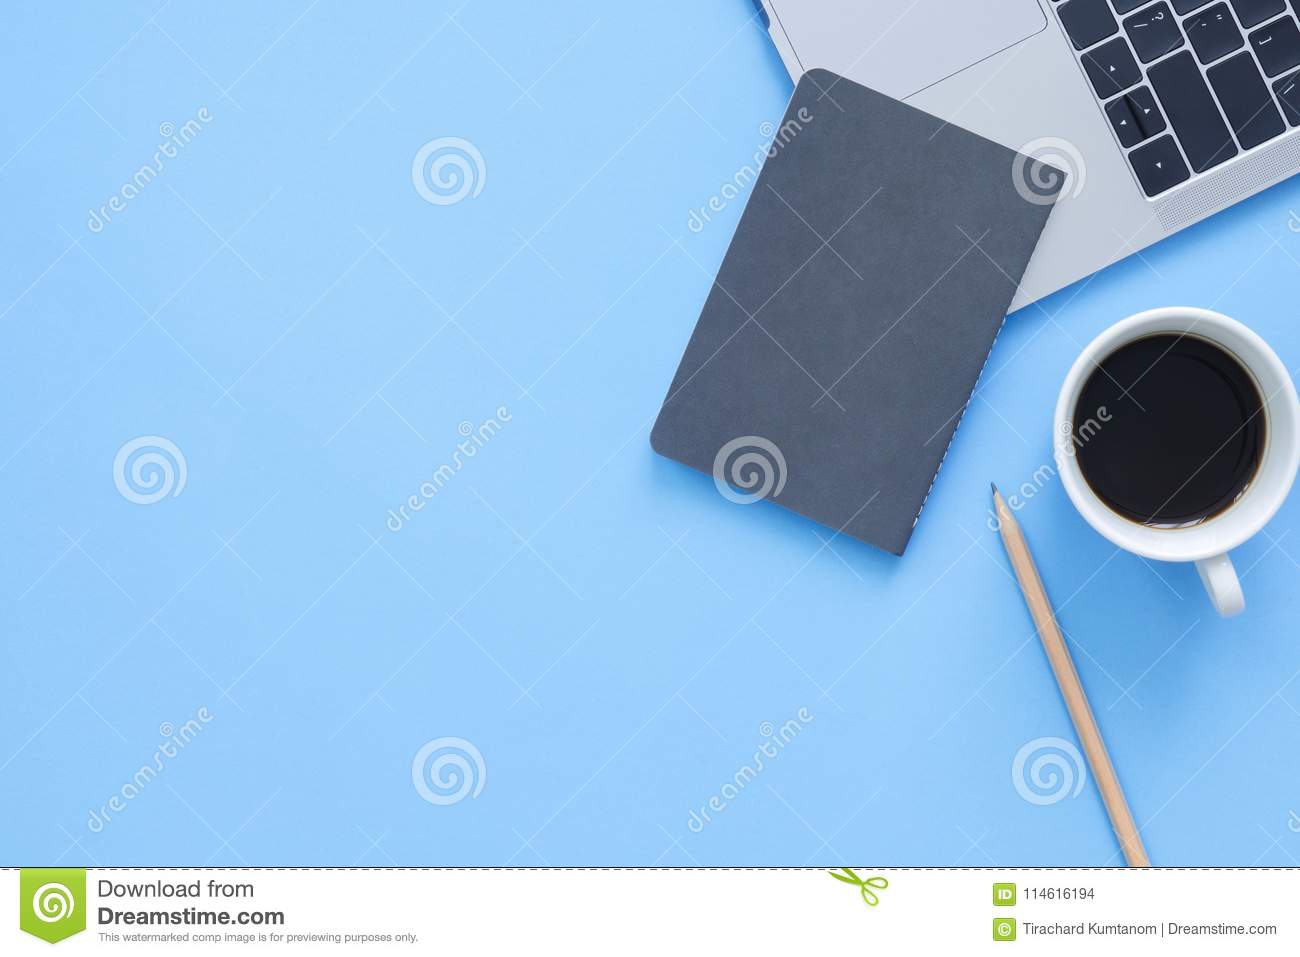 Creative flat lay photo of workspace desk. Top view office desk with laptop, notebooks and coffee cup on blue color background.